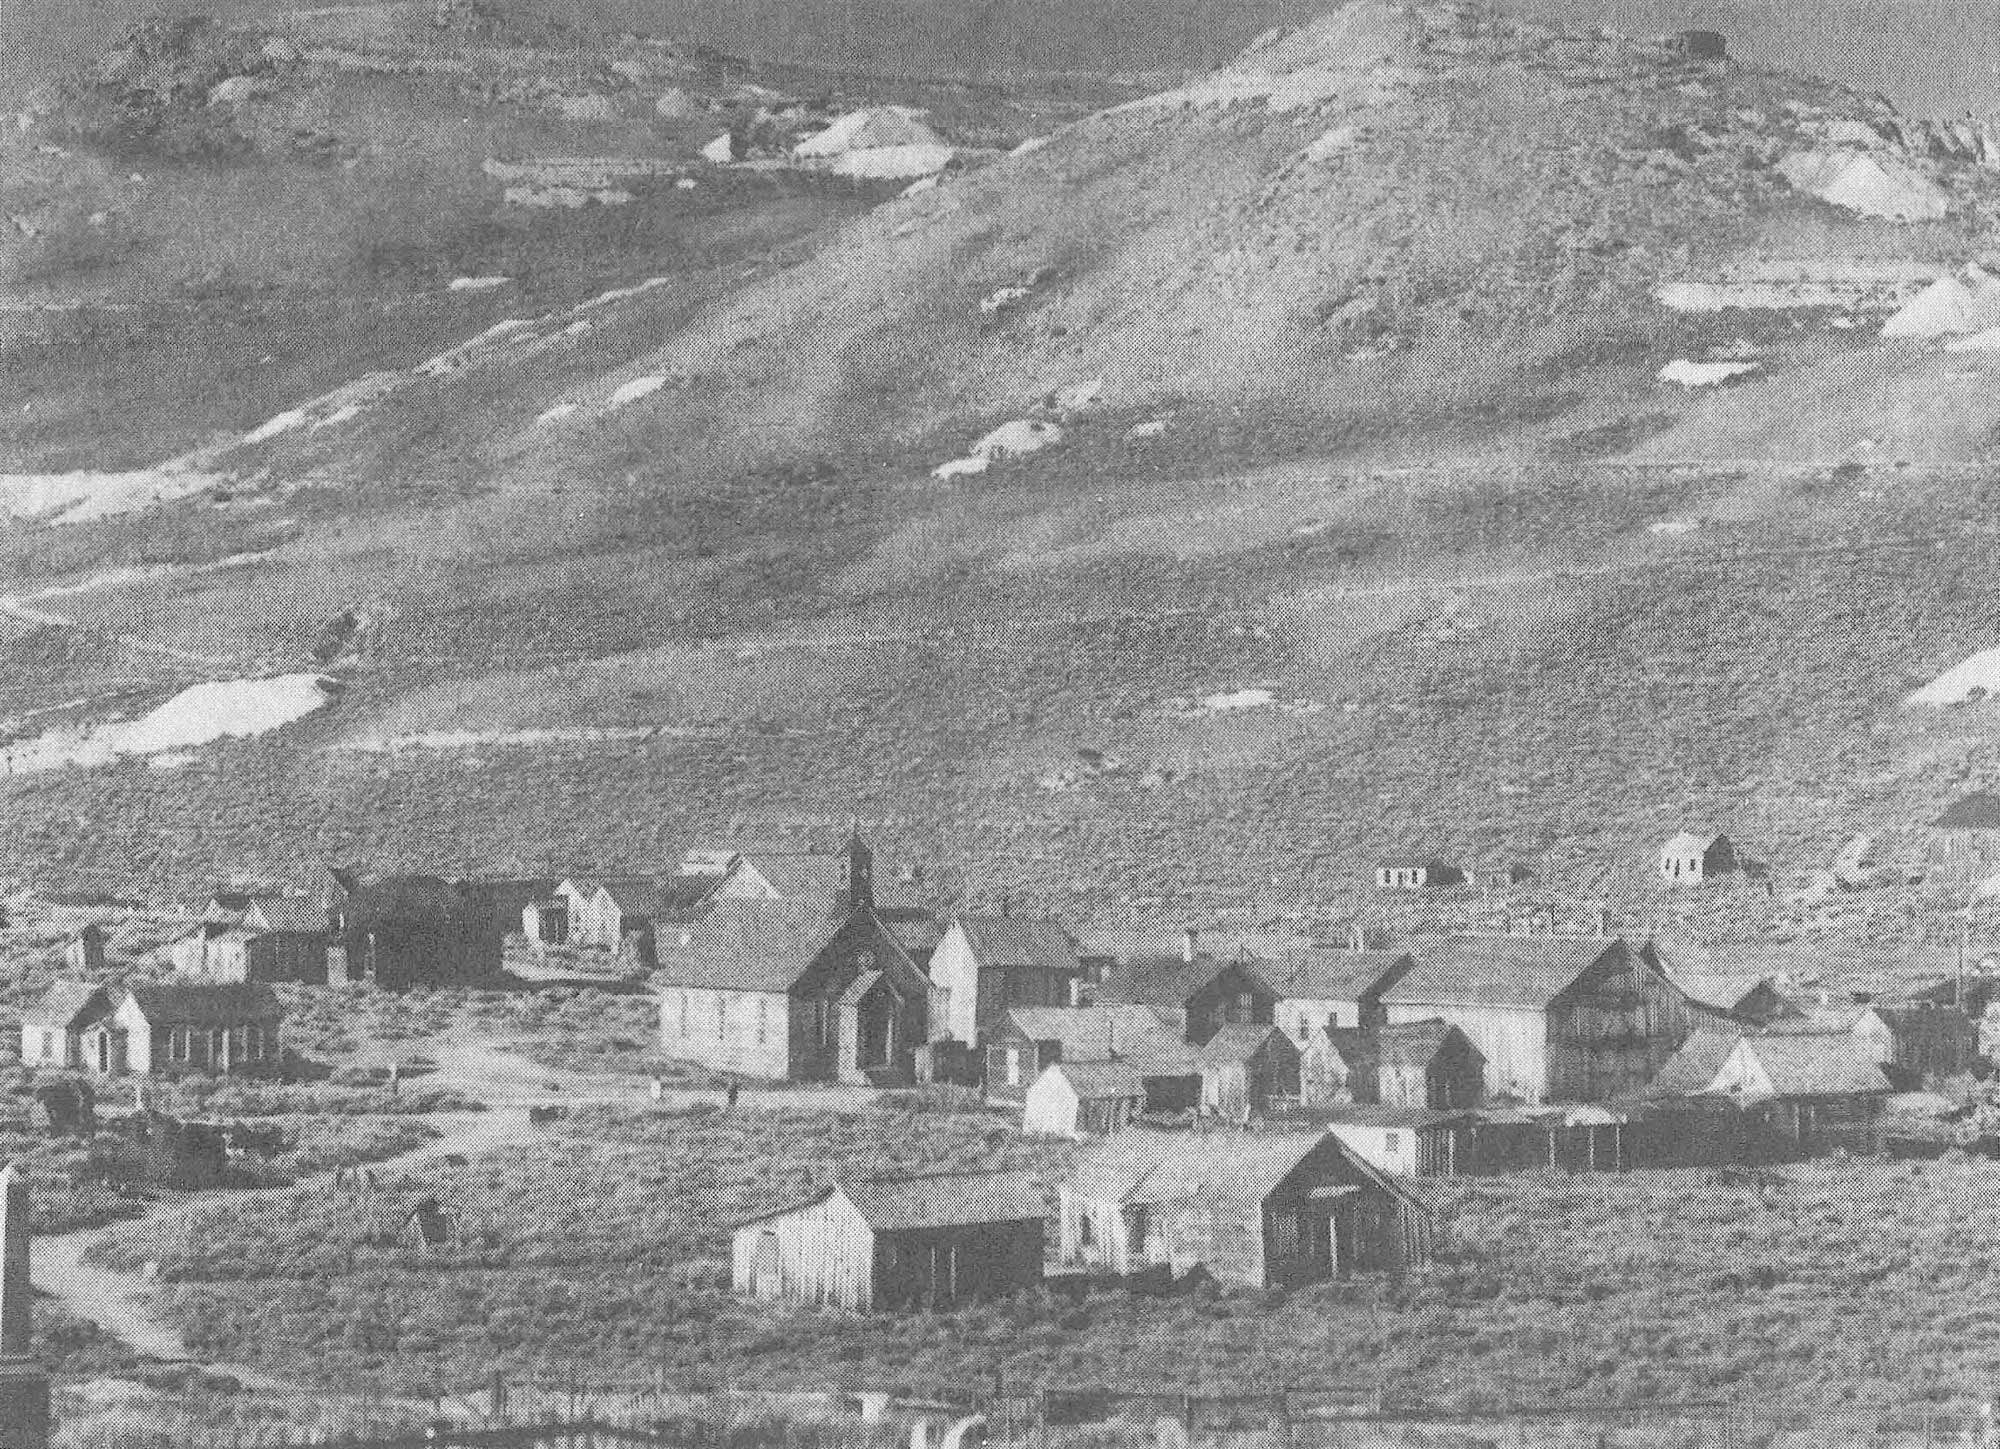 Hard-luck town a tombstone for the wild West | Bodie.com